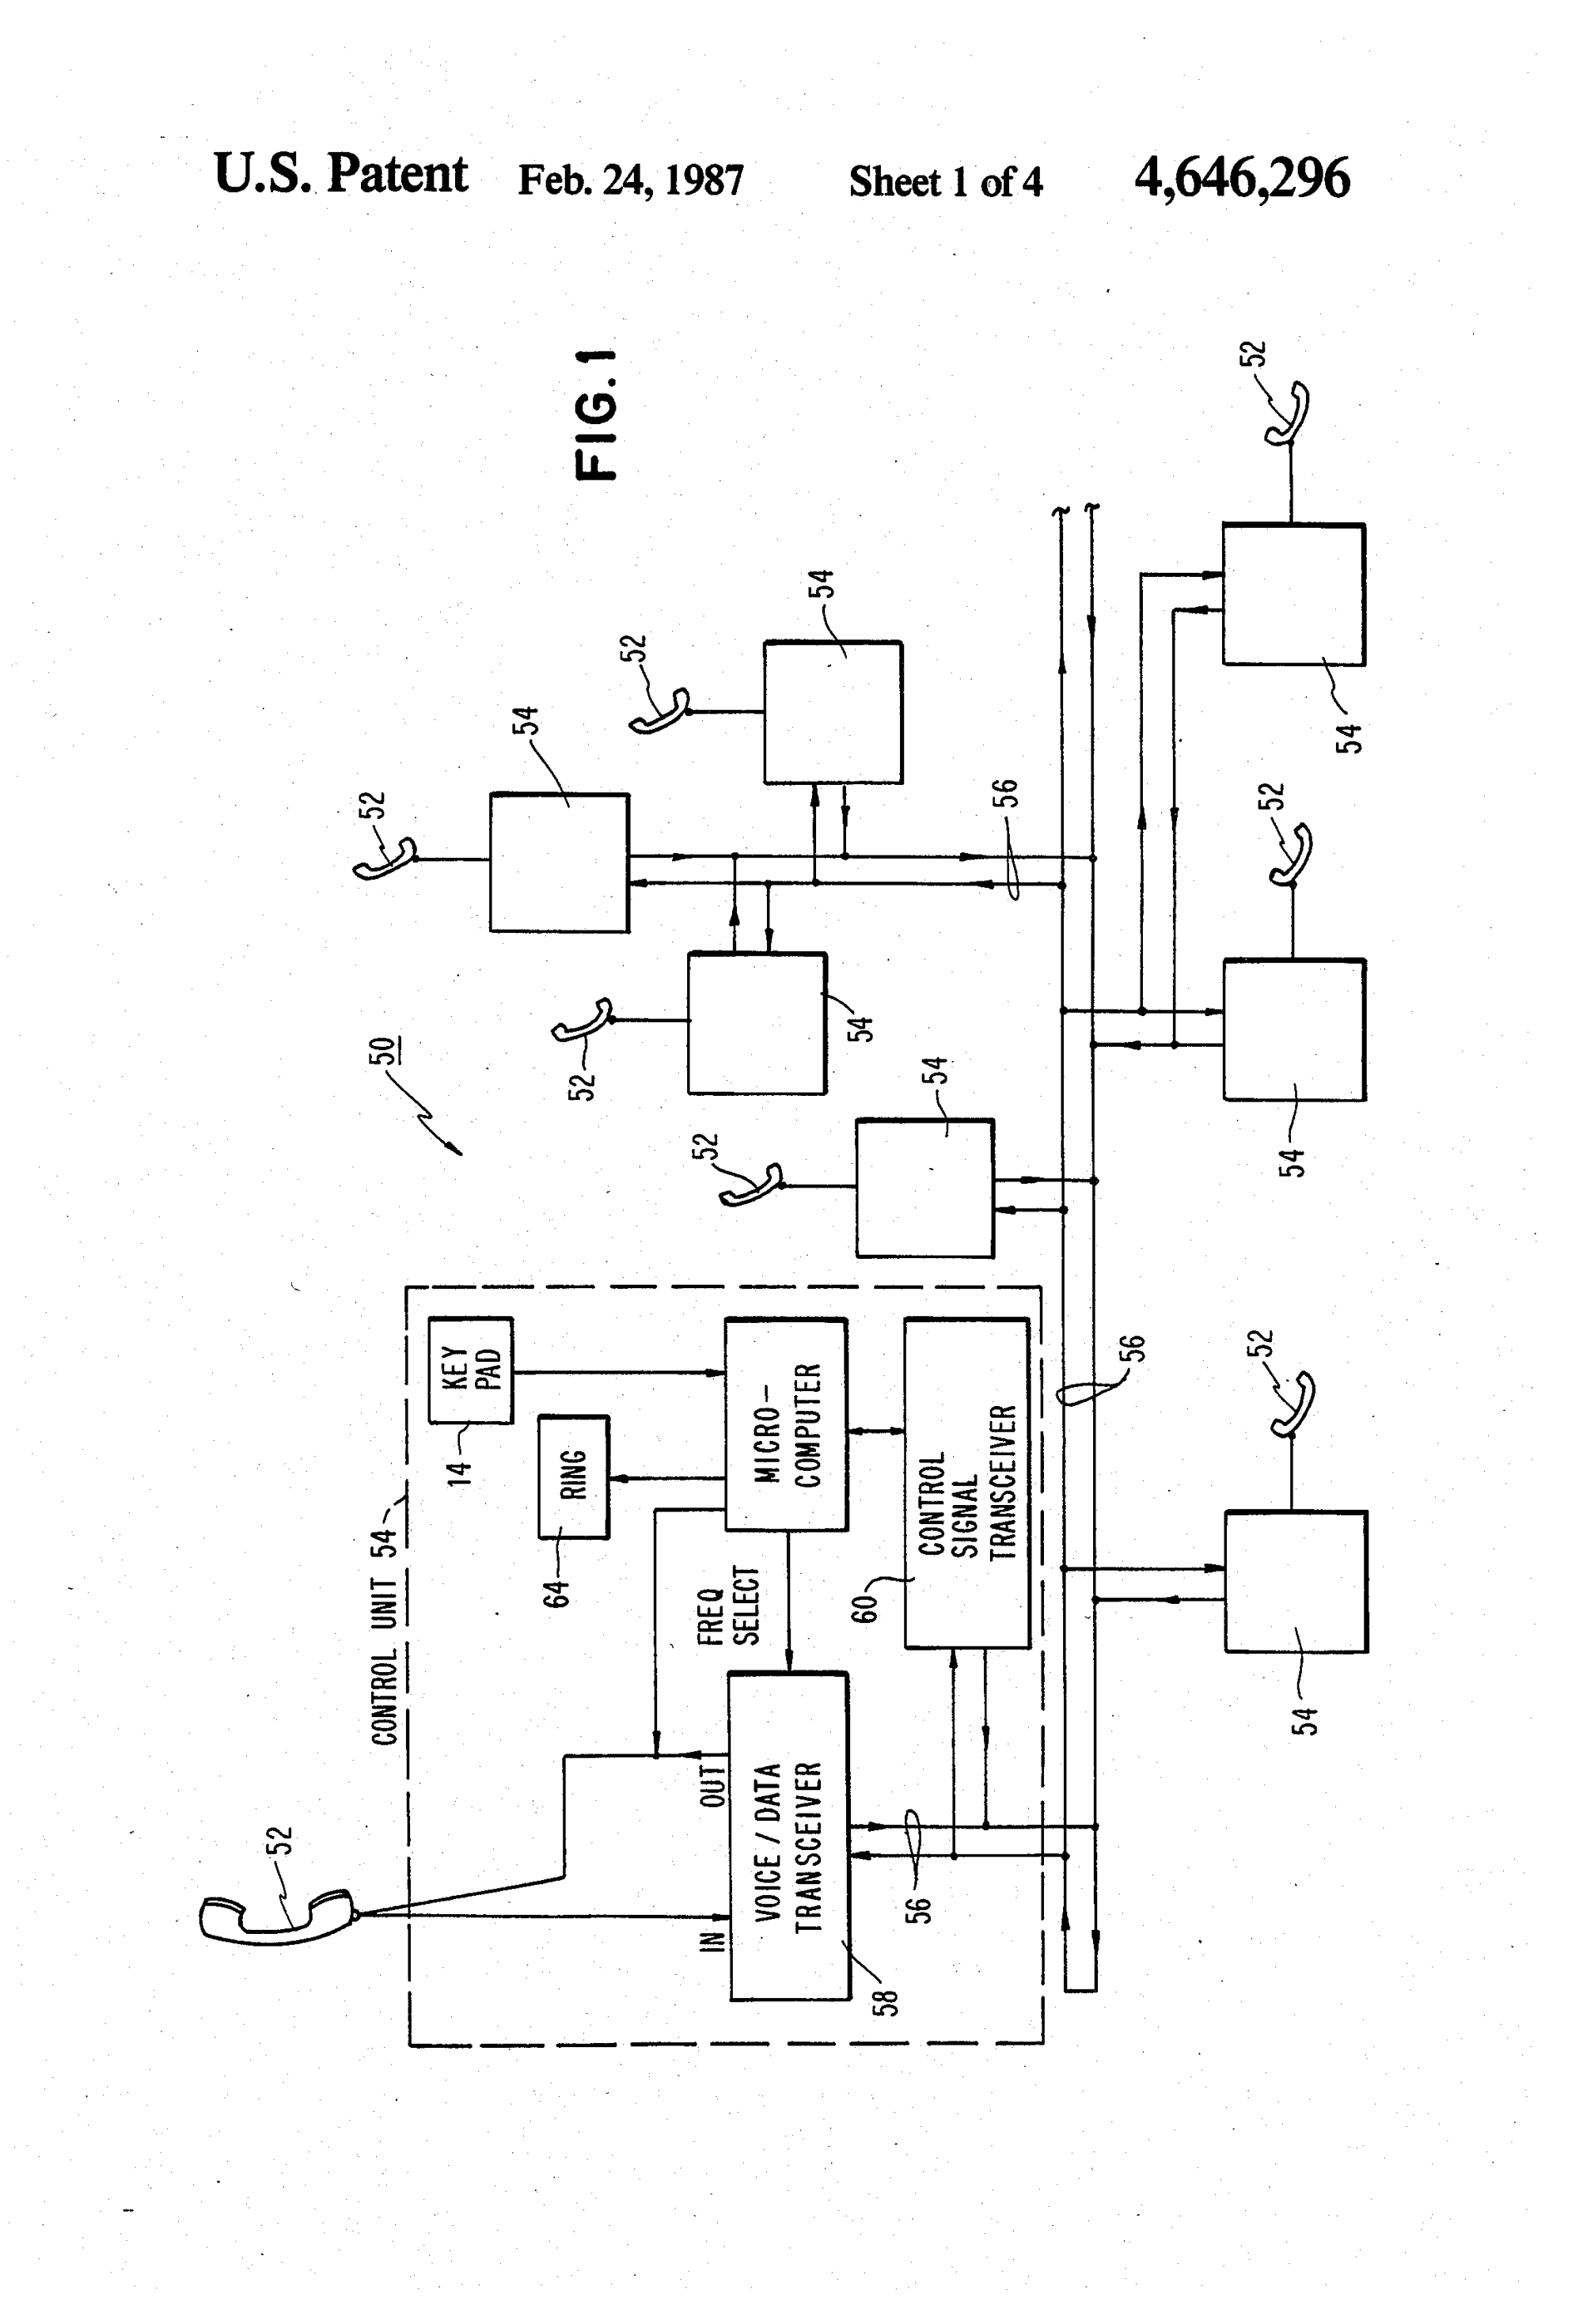 hight resolution of patent us4646296 distributed telephone system google patents wiring an multiple outlet including patent us7522714 telephone outlet